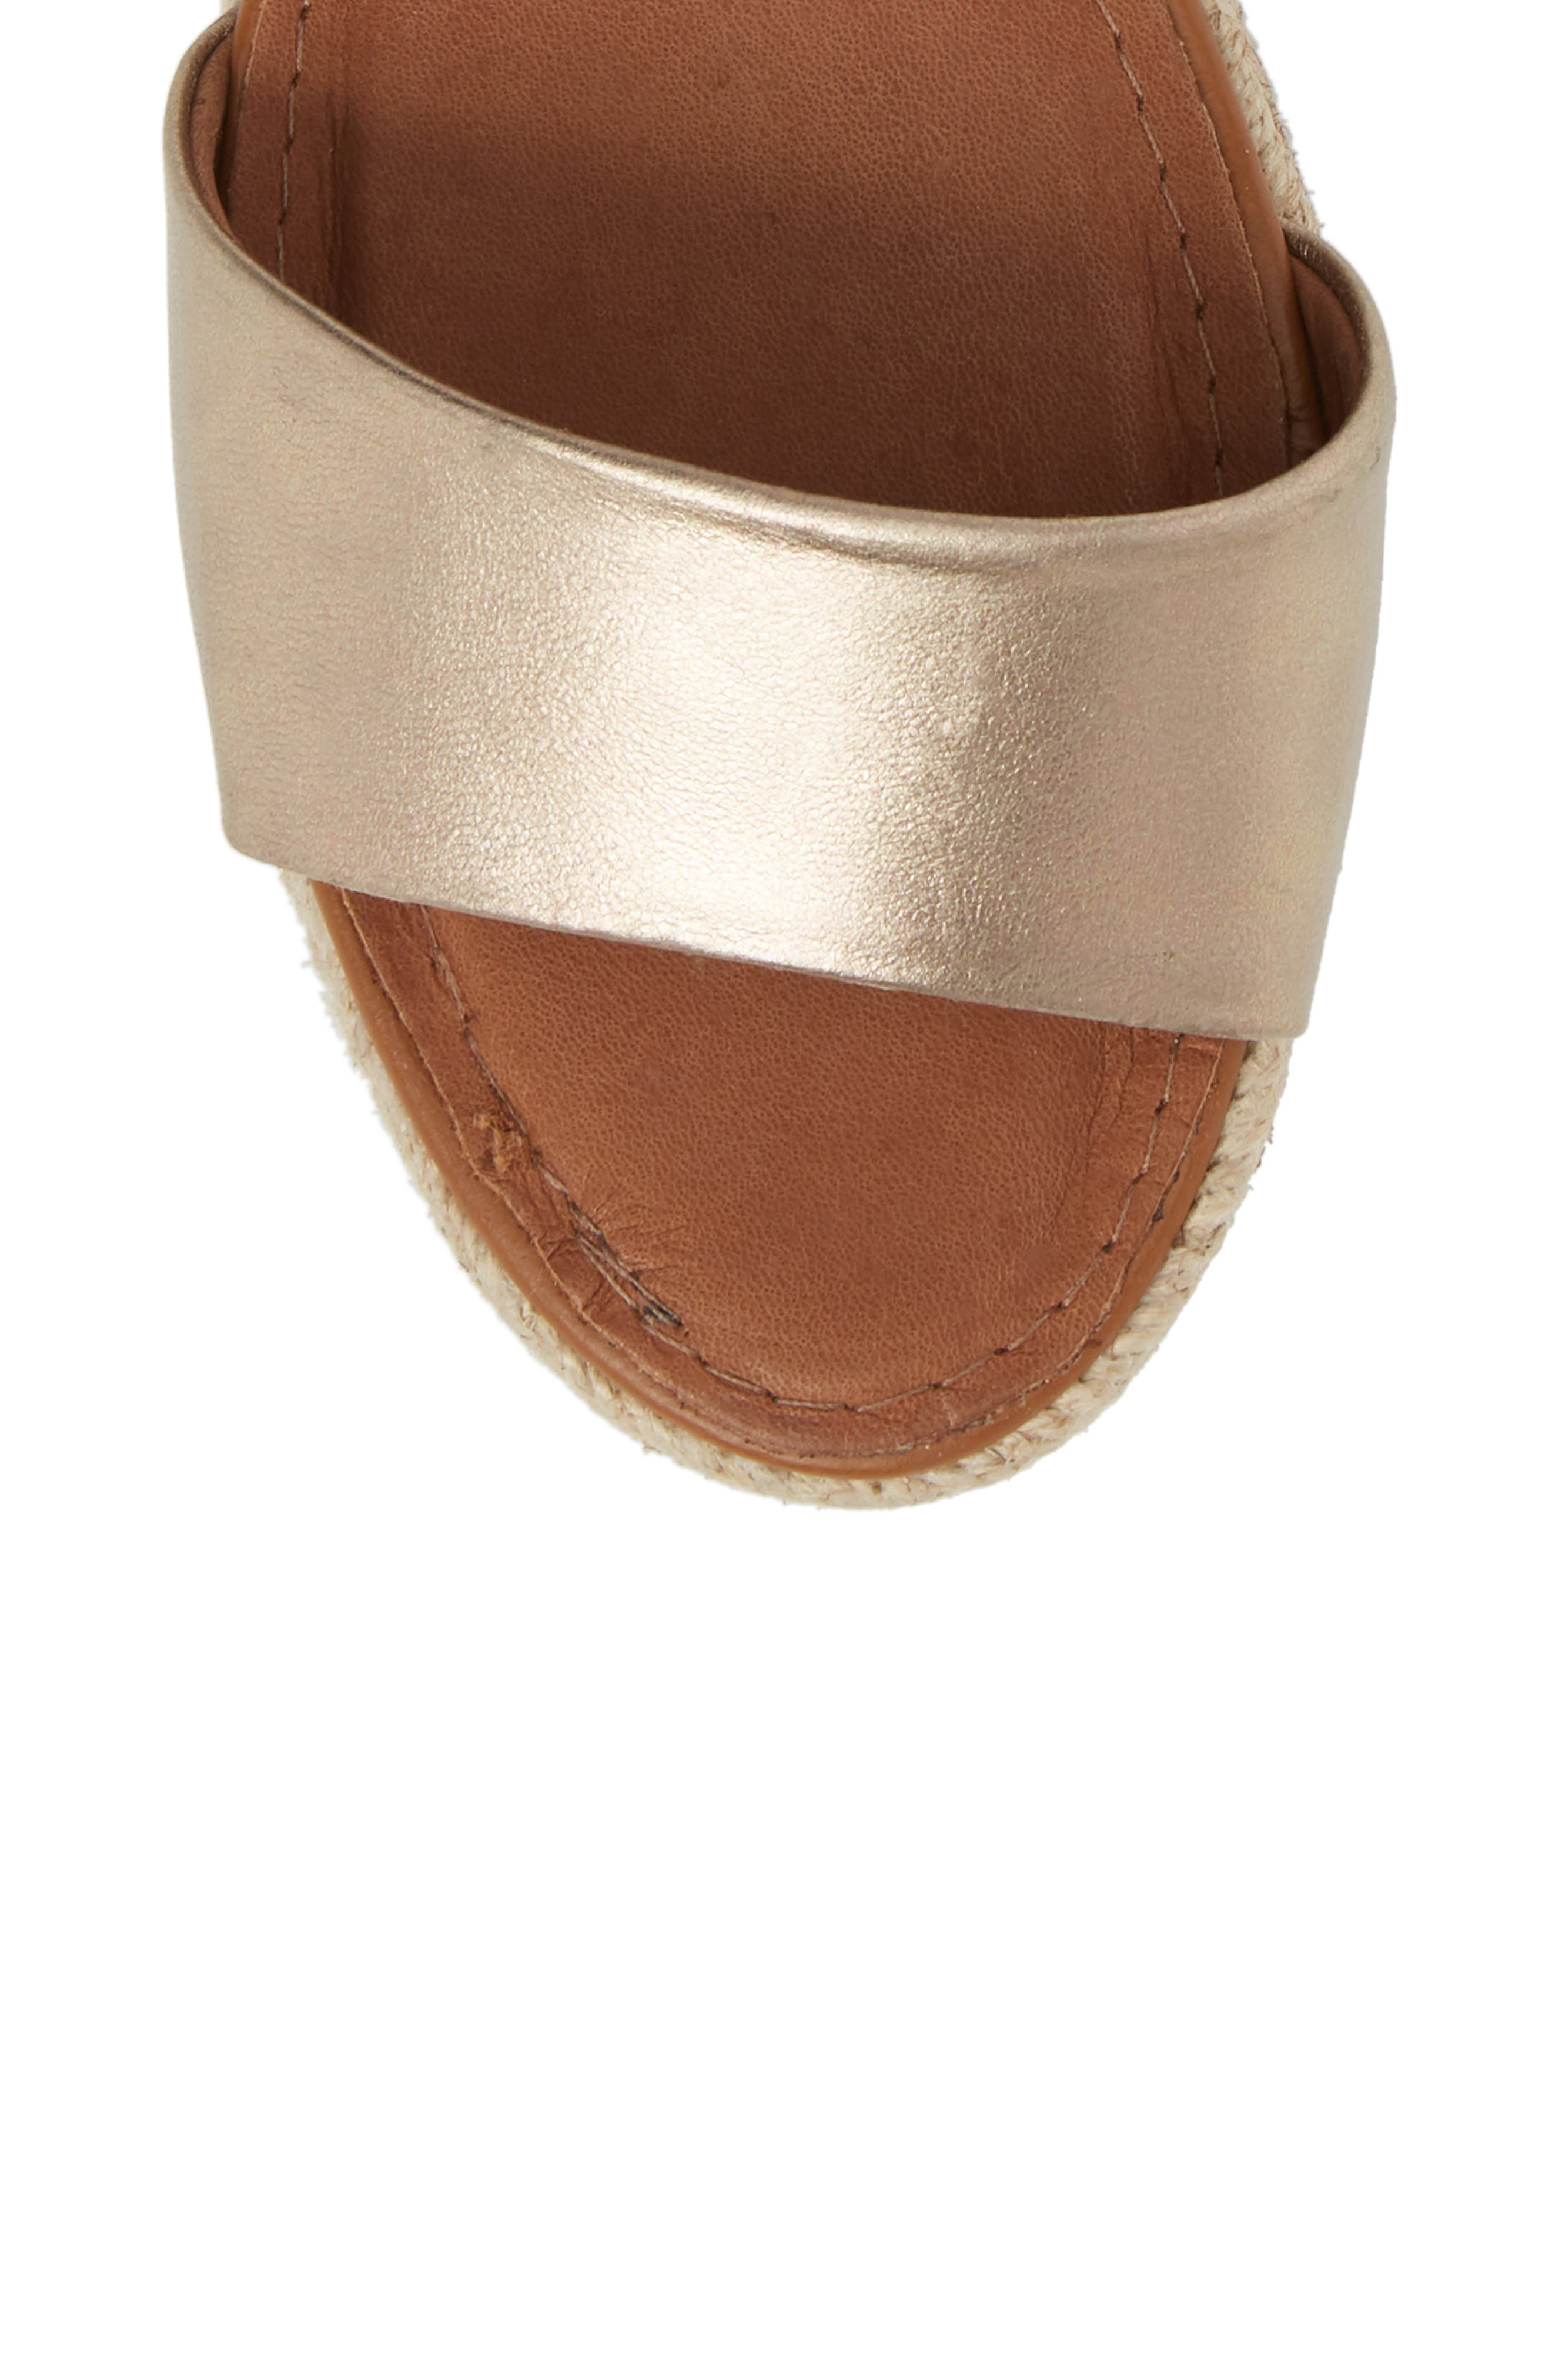 Erika Espadrille Sandal,                             Alternate thumbnail 5, color,                             042